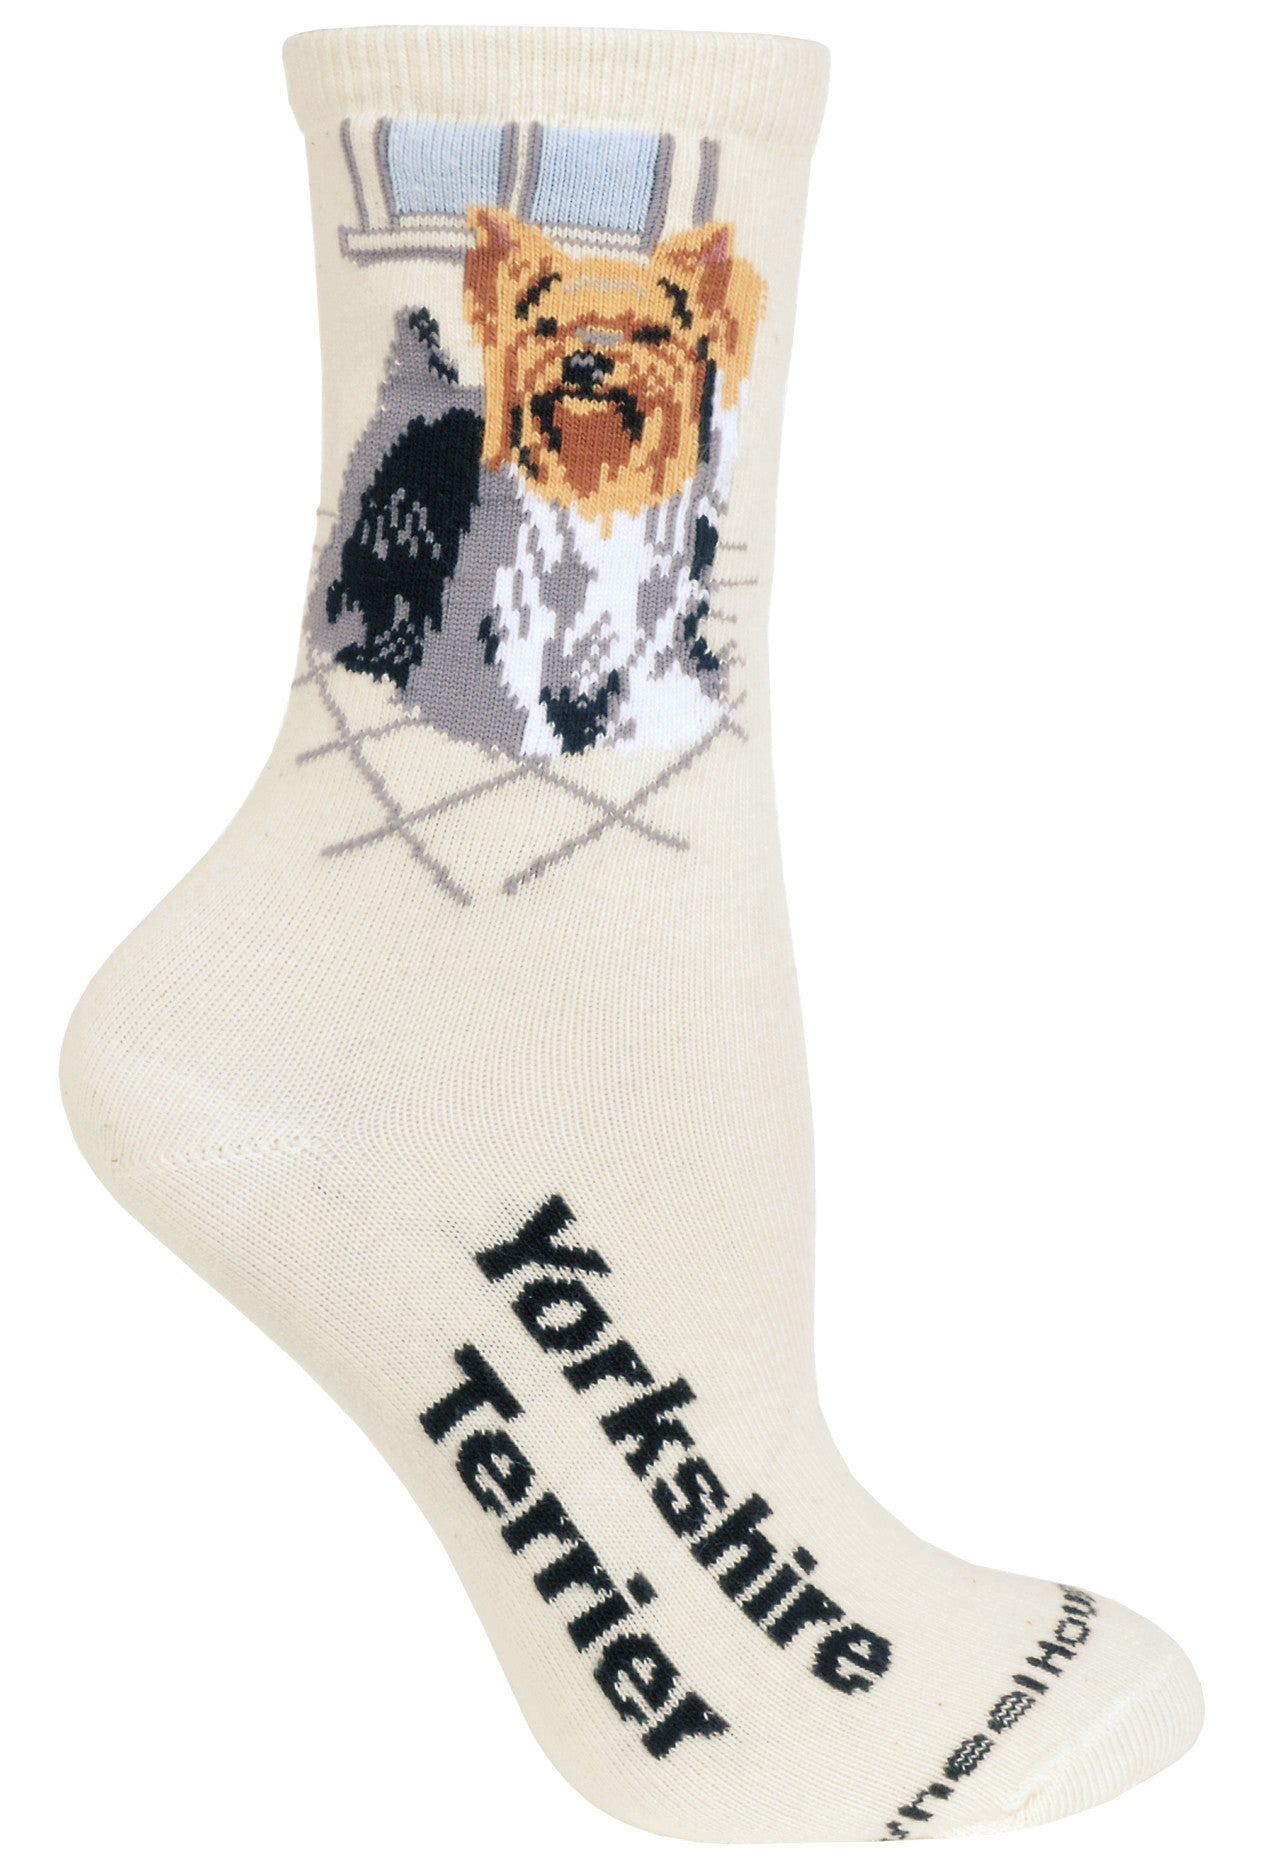 Yorkshire Terrier Crew Socks on Natural